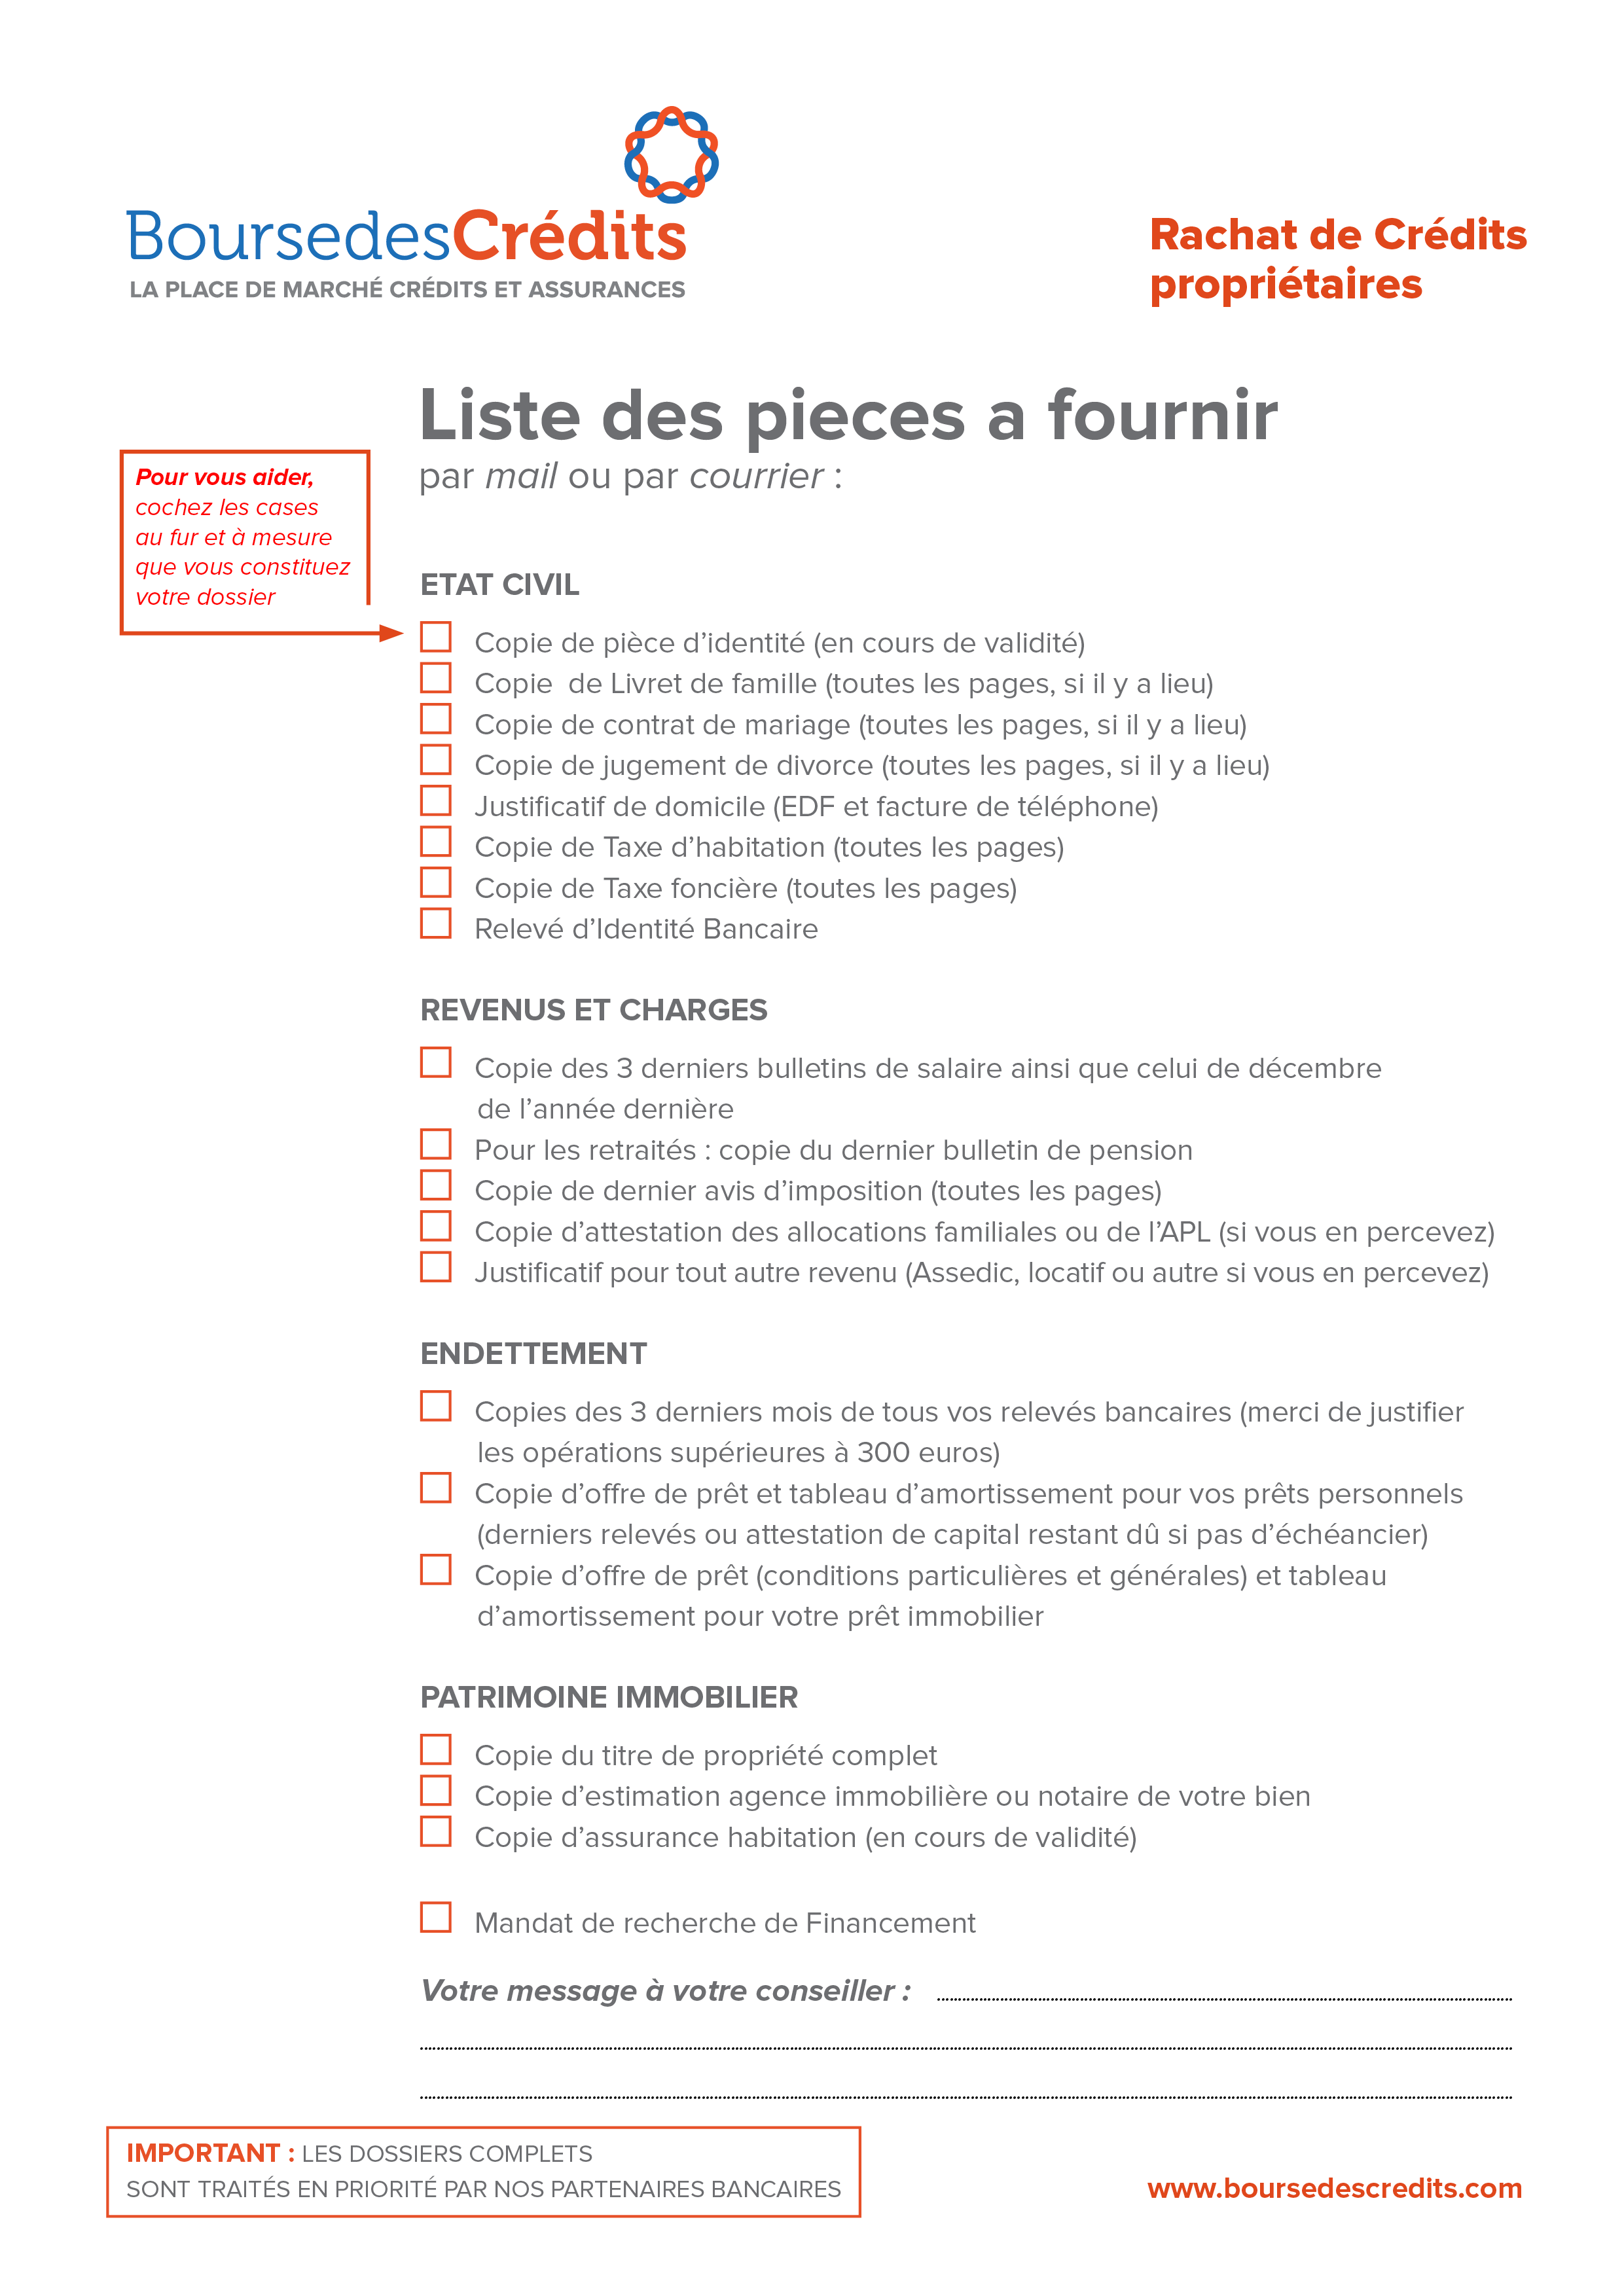 Constitution dossier rachat de credit boursedescredits - Documents pret immobilier ...